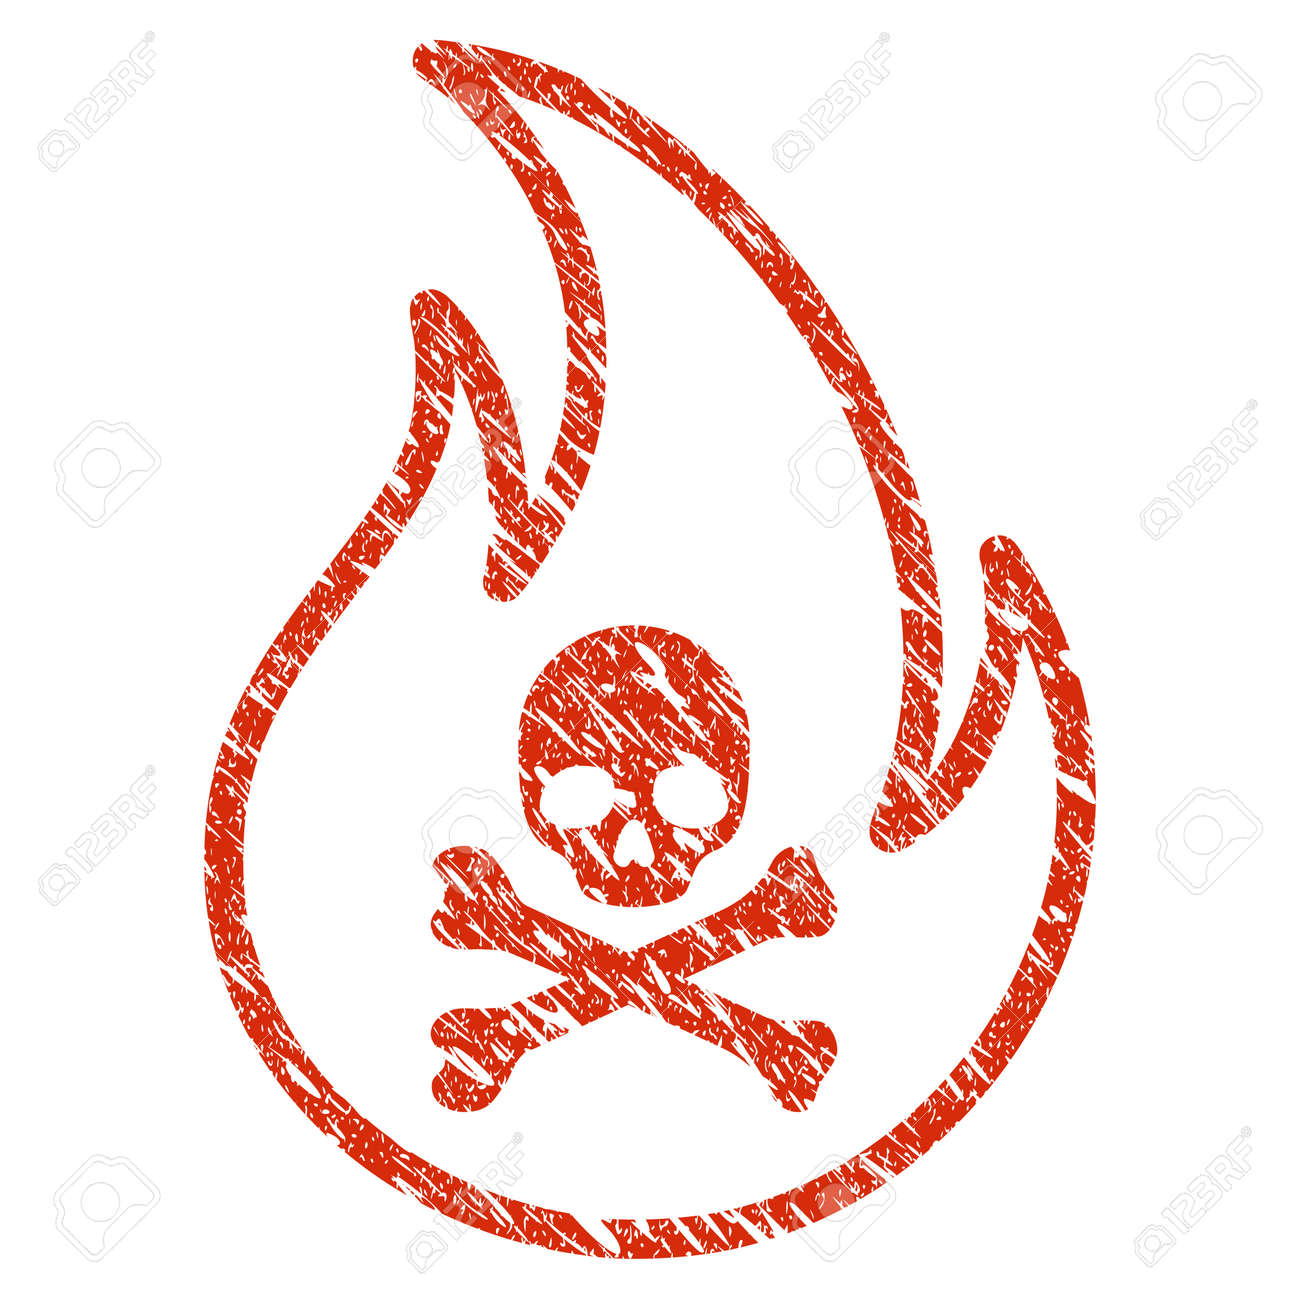 Grunge Toxic Fire Rubber Seal Stamp Watermark Icon Toxic Fire